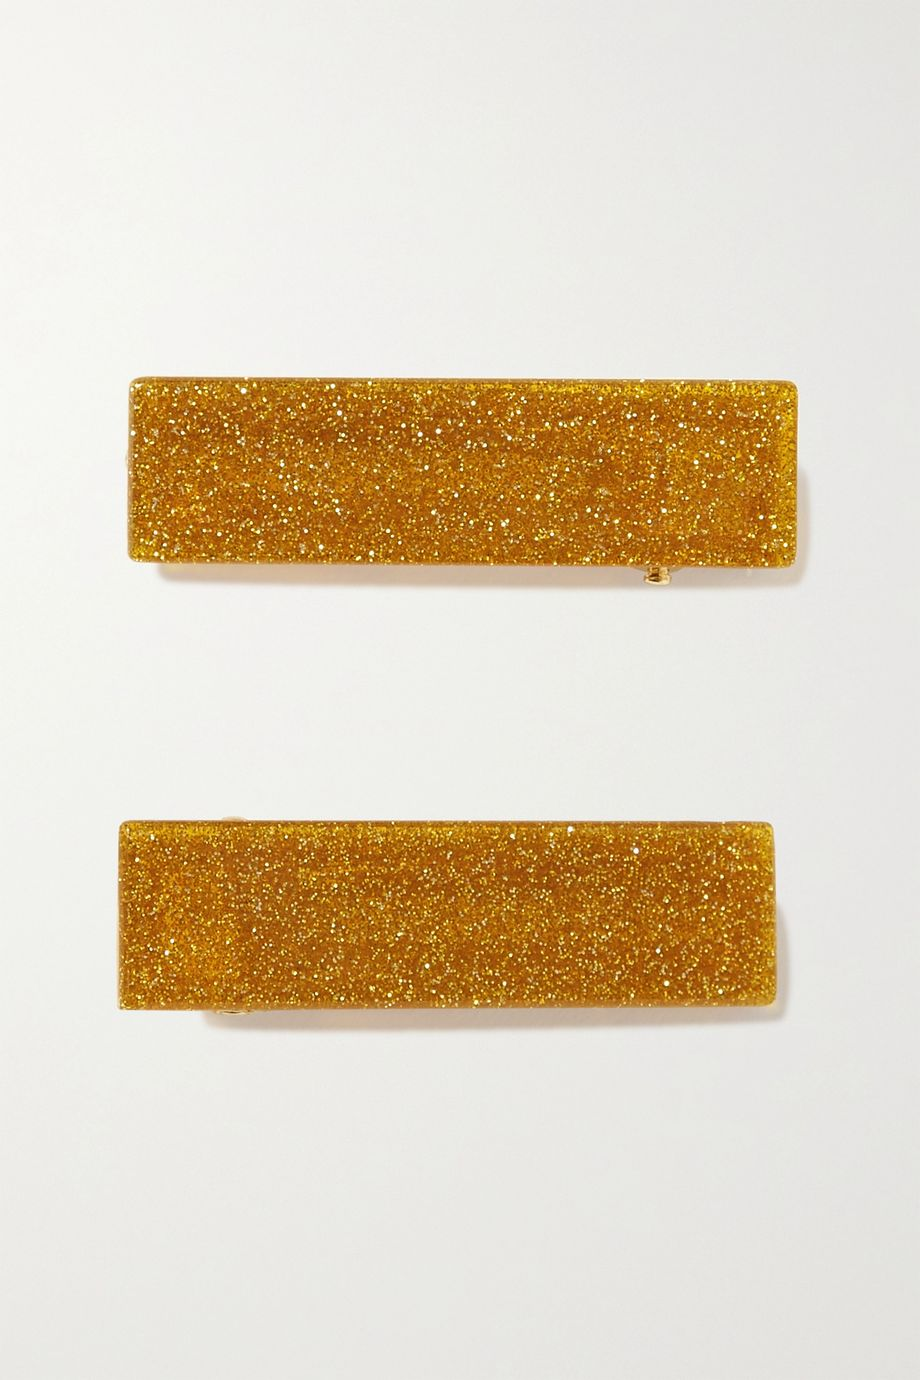 Valet Clementine set of two glittered resin hair clips